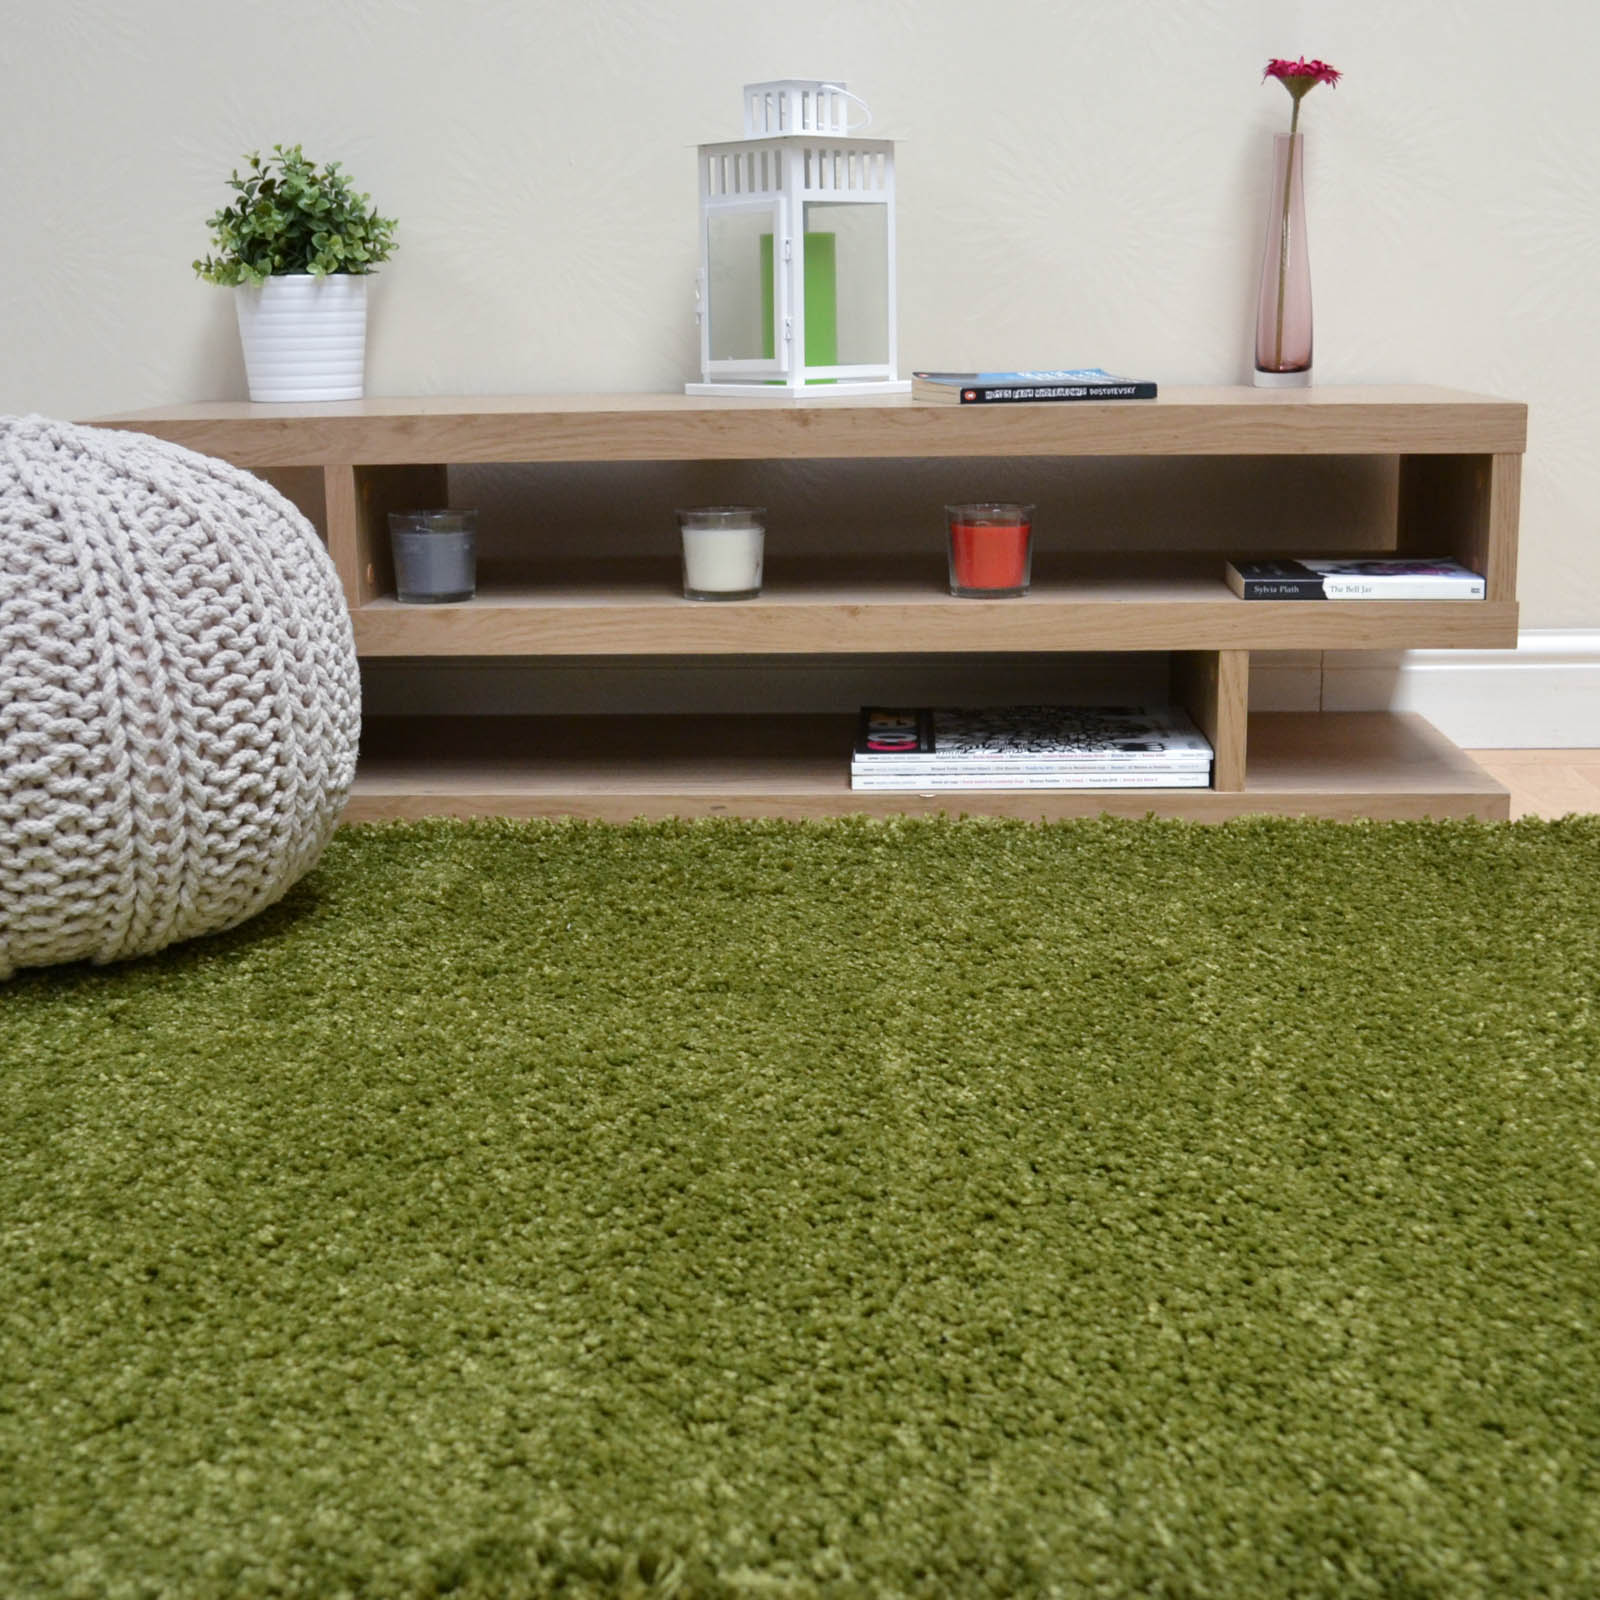 Savanna Shaggy Rugs in Green